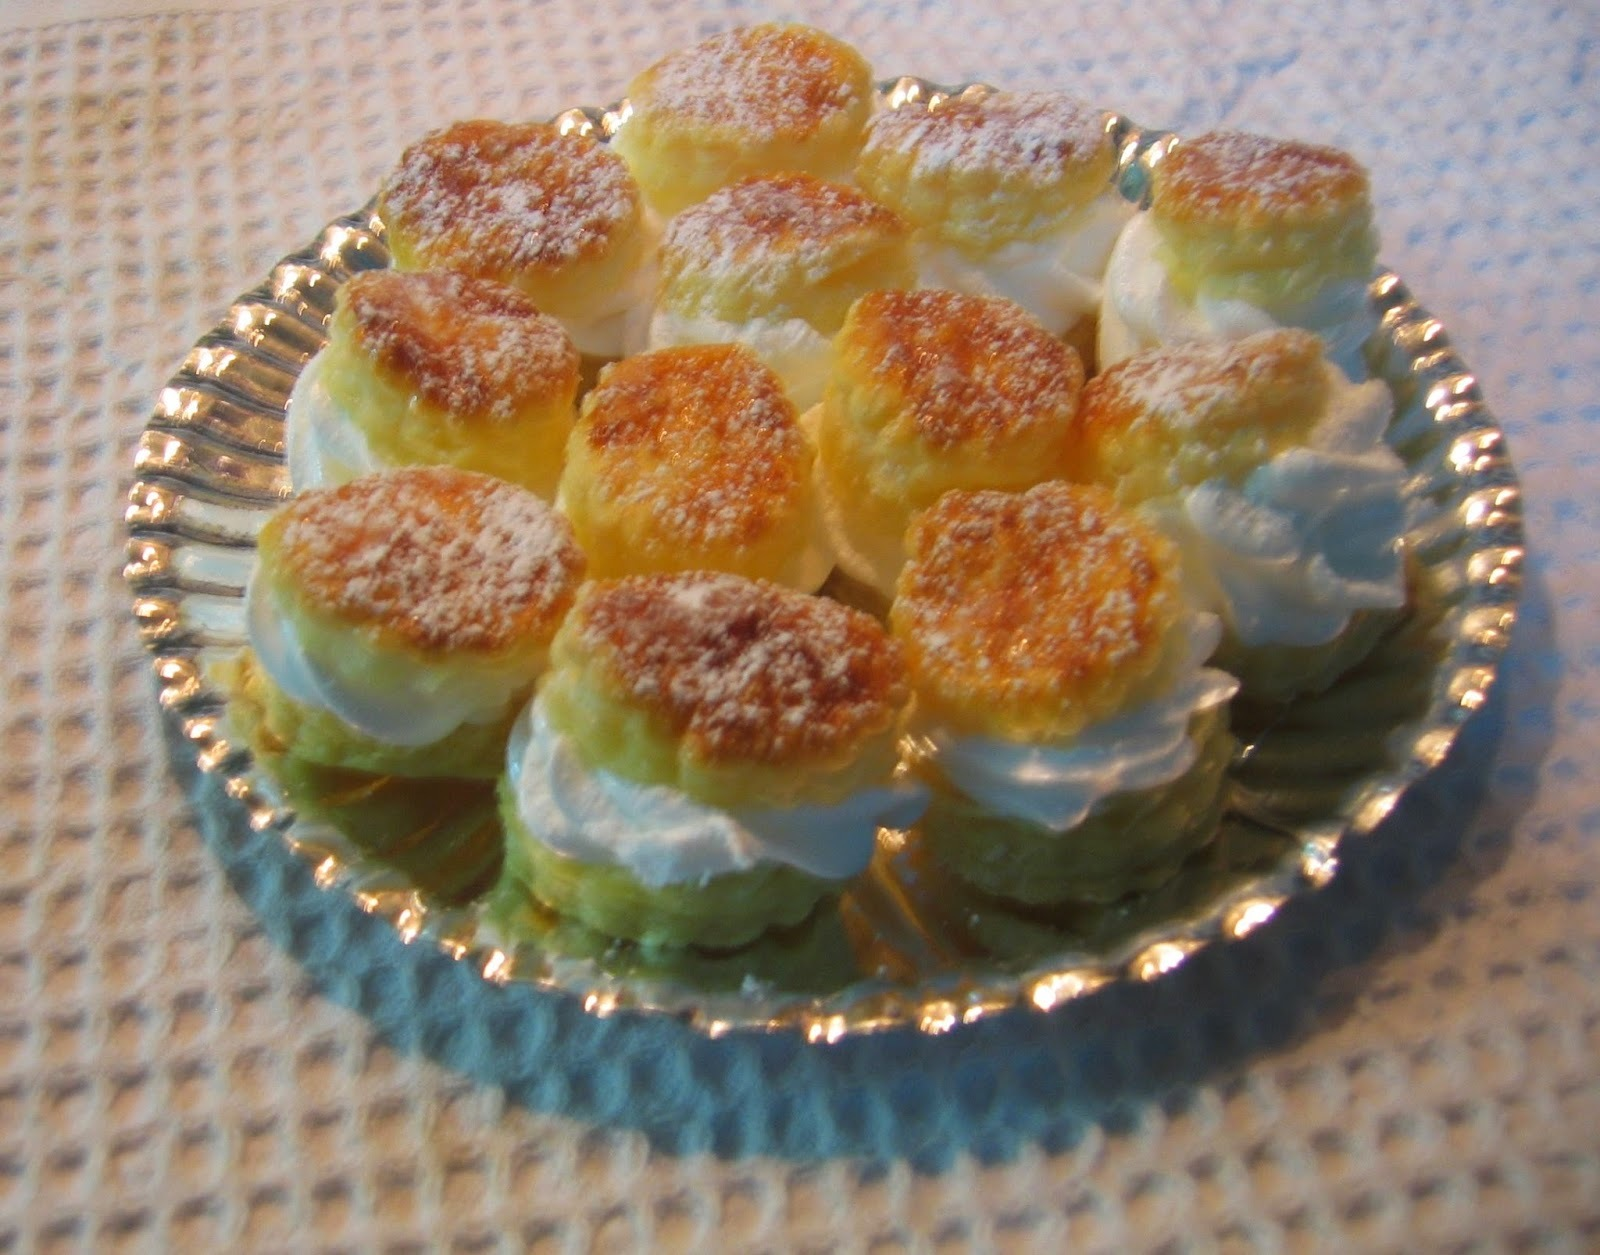 Pastelitos de merengue